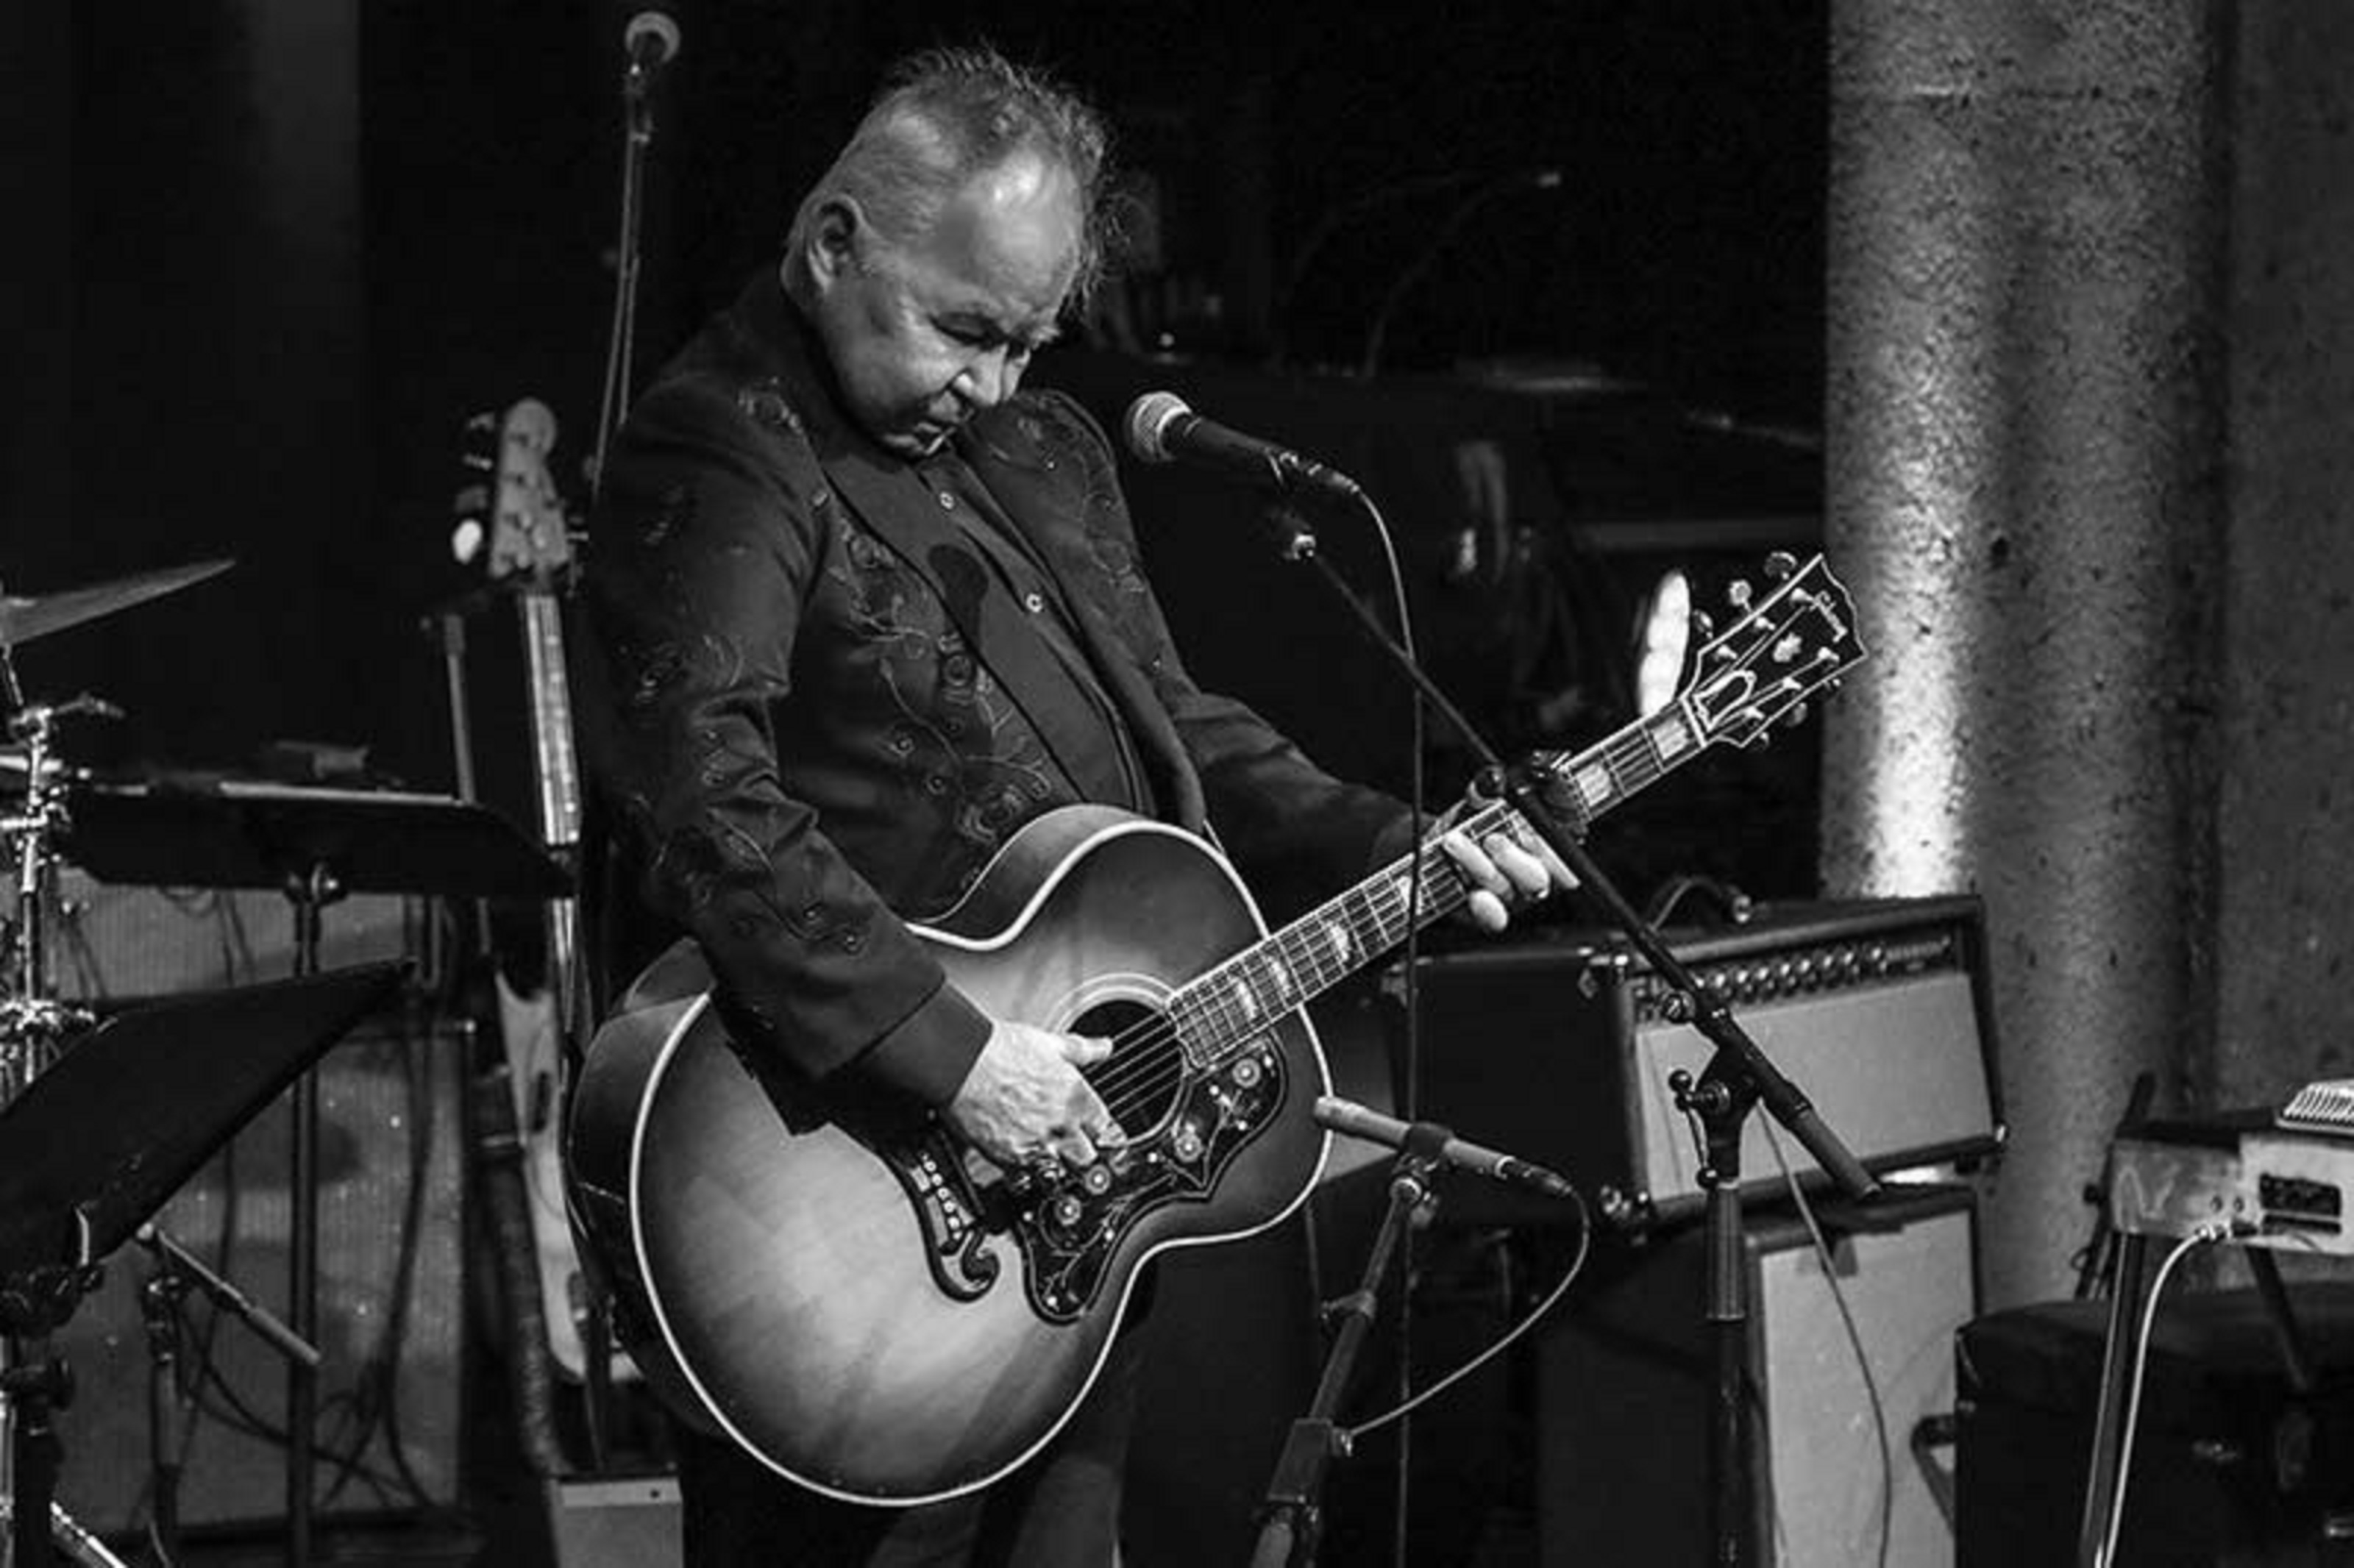 Fellow Singer/Songwriters and Friends Remember and Mourn The Loss of Lyrical Legend John Prine